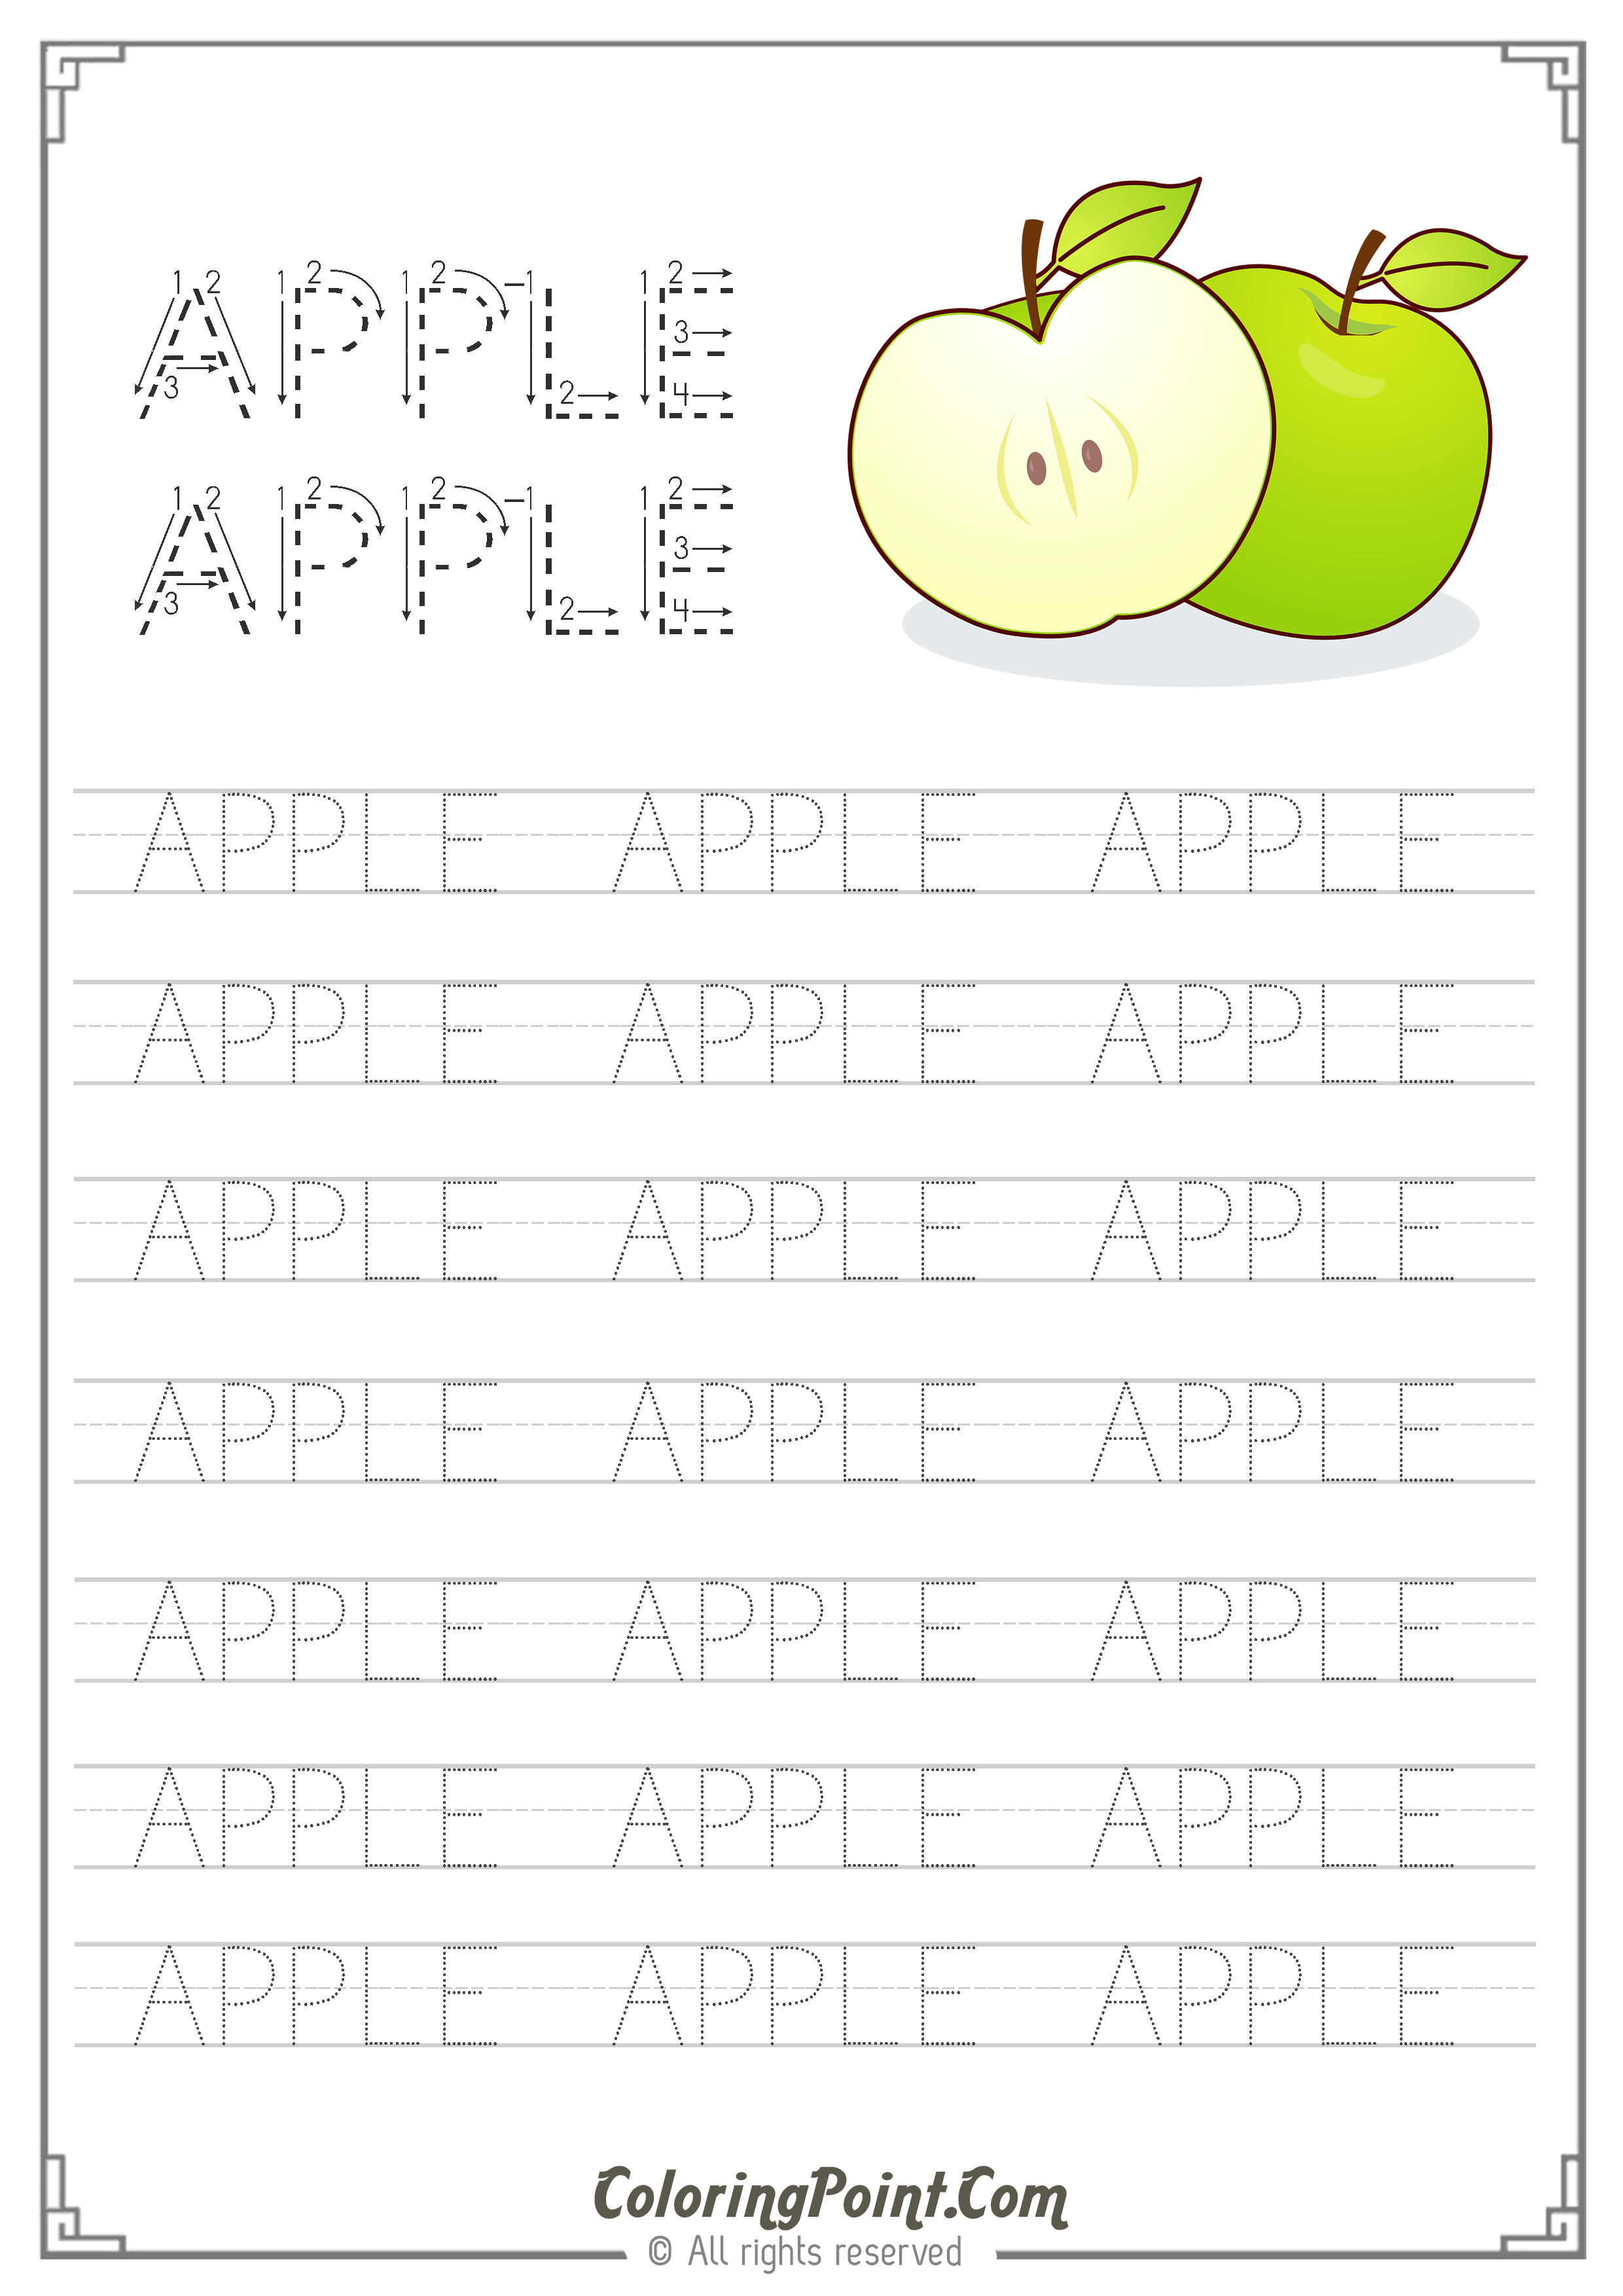 Free Printable Worksheets Ready To Print A4 Paper Size